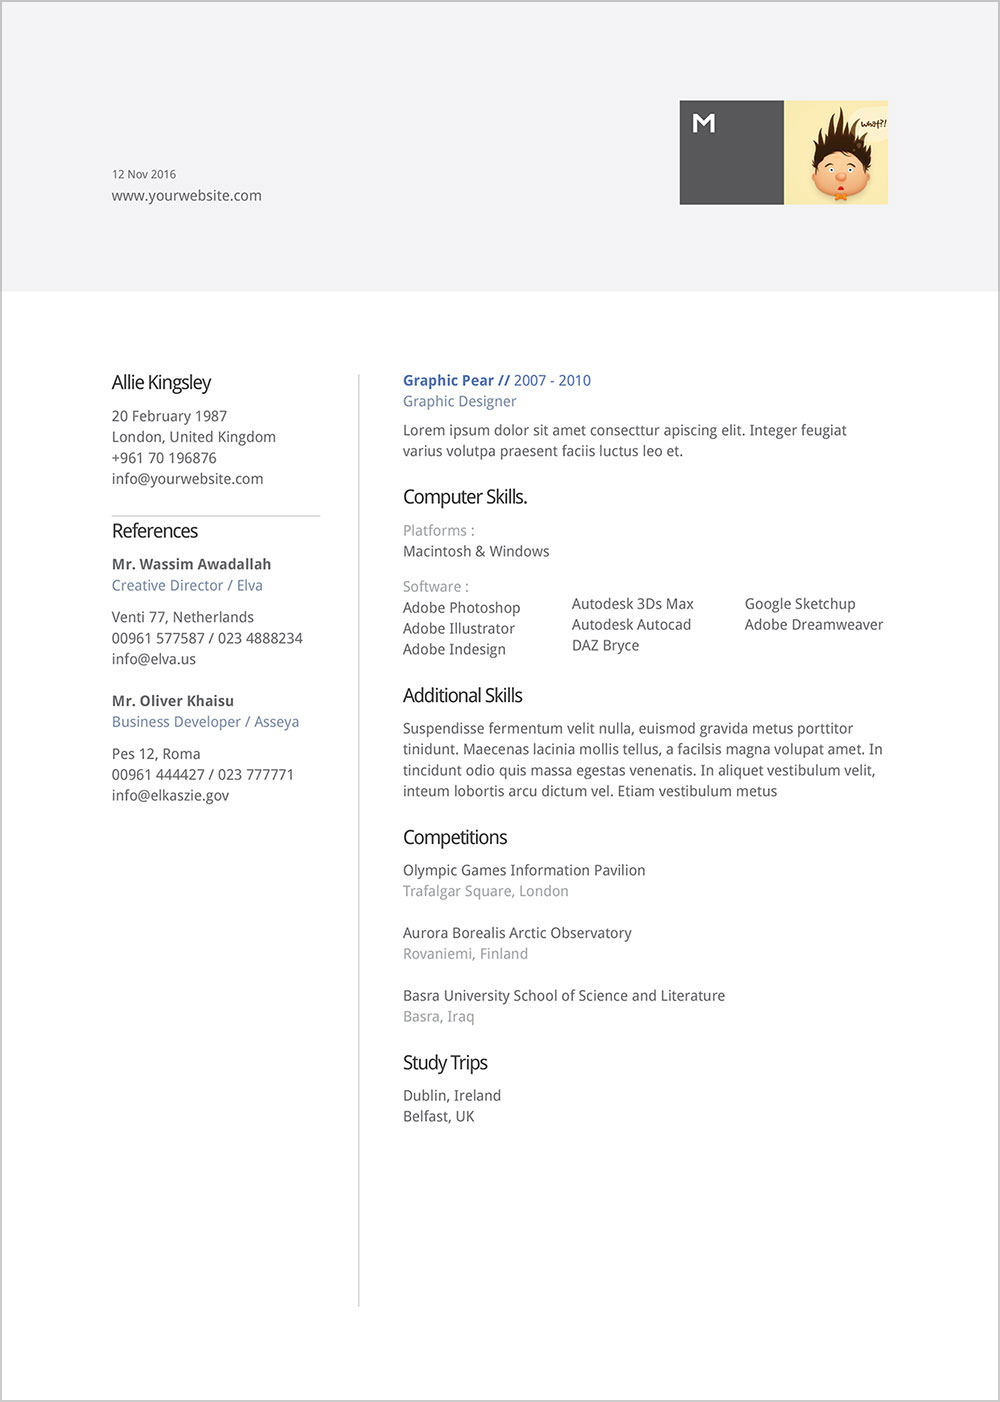 Free-Ai-DOC-&-DOCX-Professional-Resume-Template-for-Architects-&-Designers-(5)